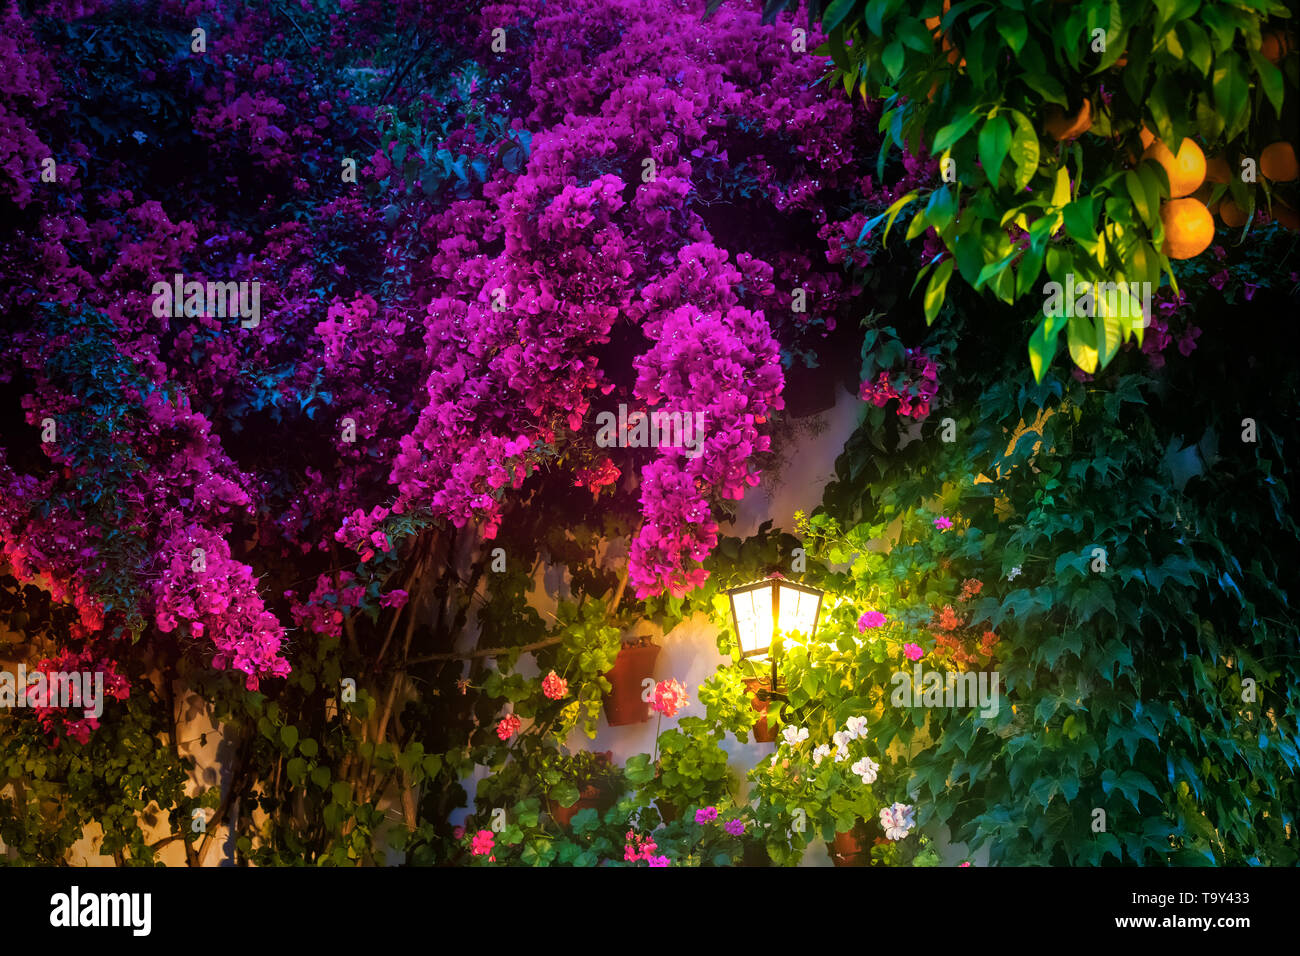 Wall lantern in a typical cordovan patio ornamented for may. - Stock Image